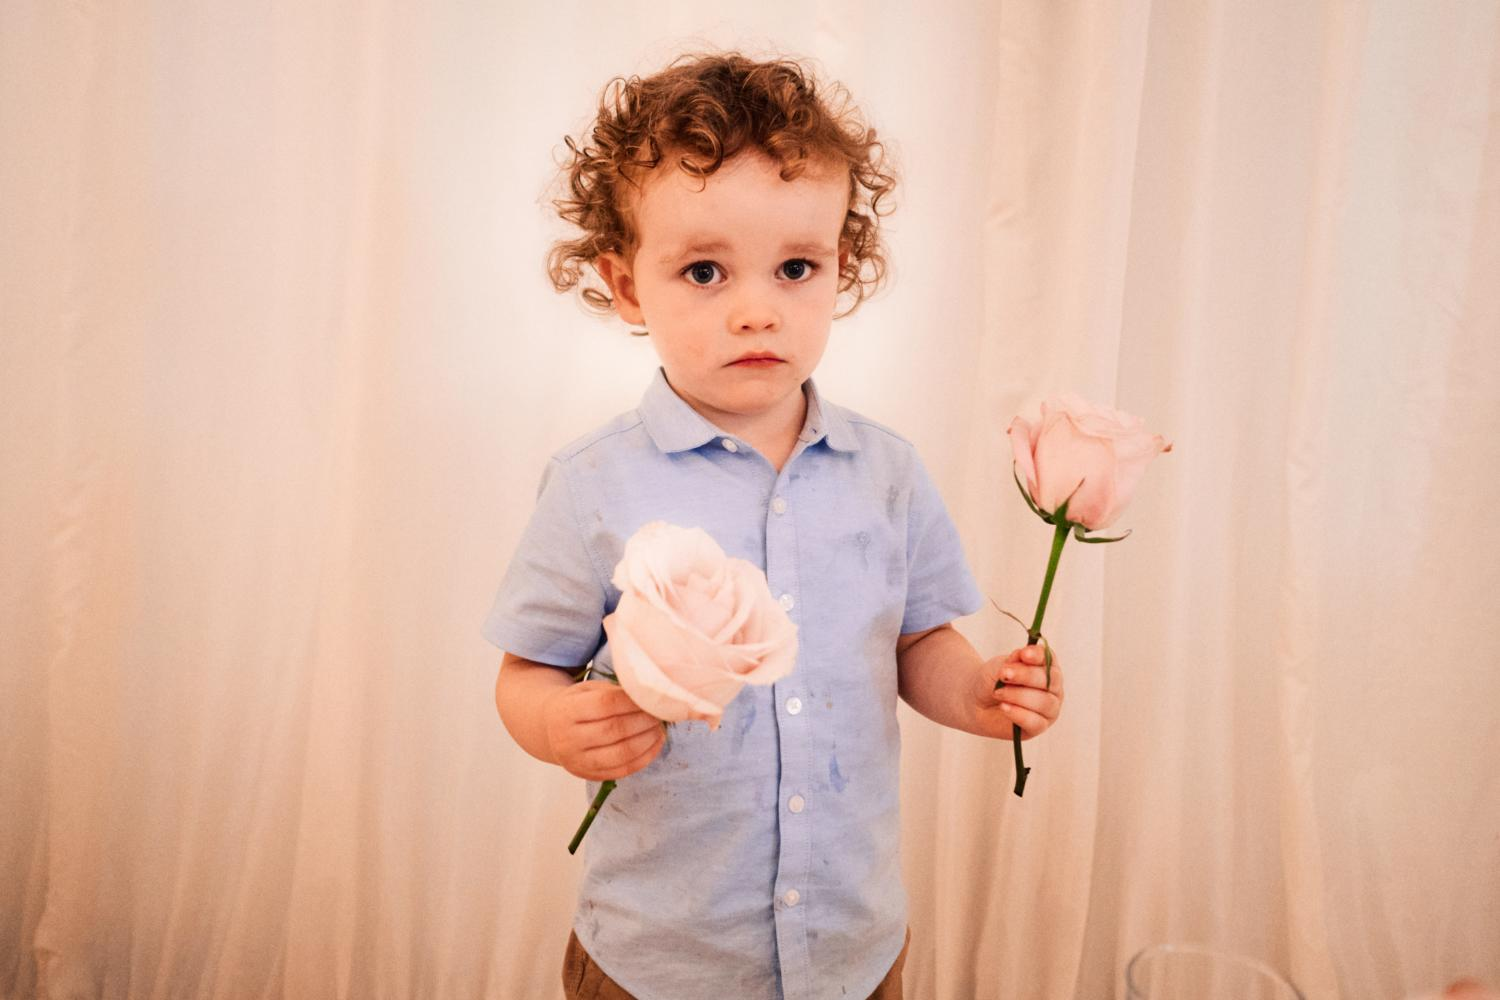 A child steals two roses at a wedding